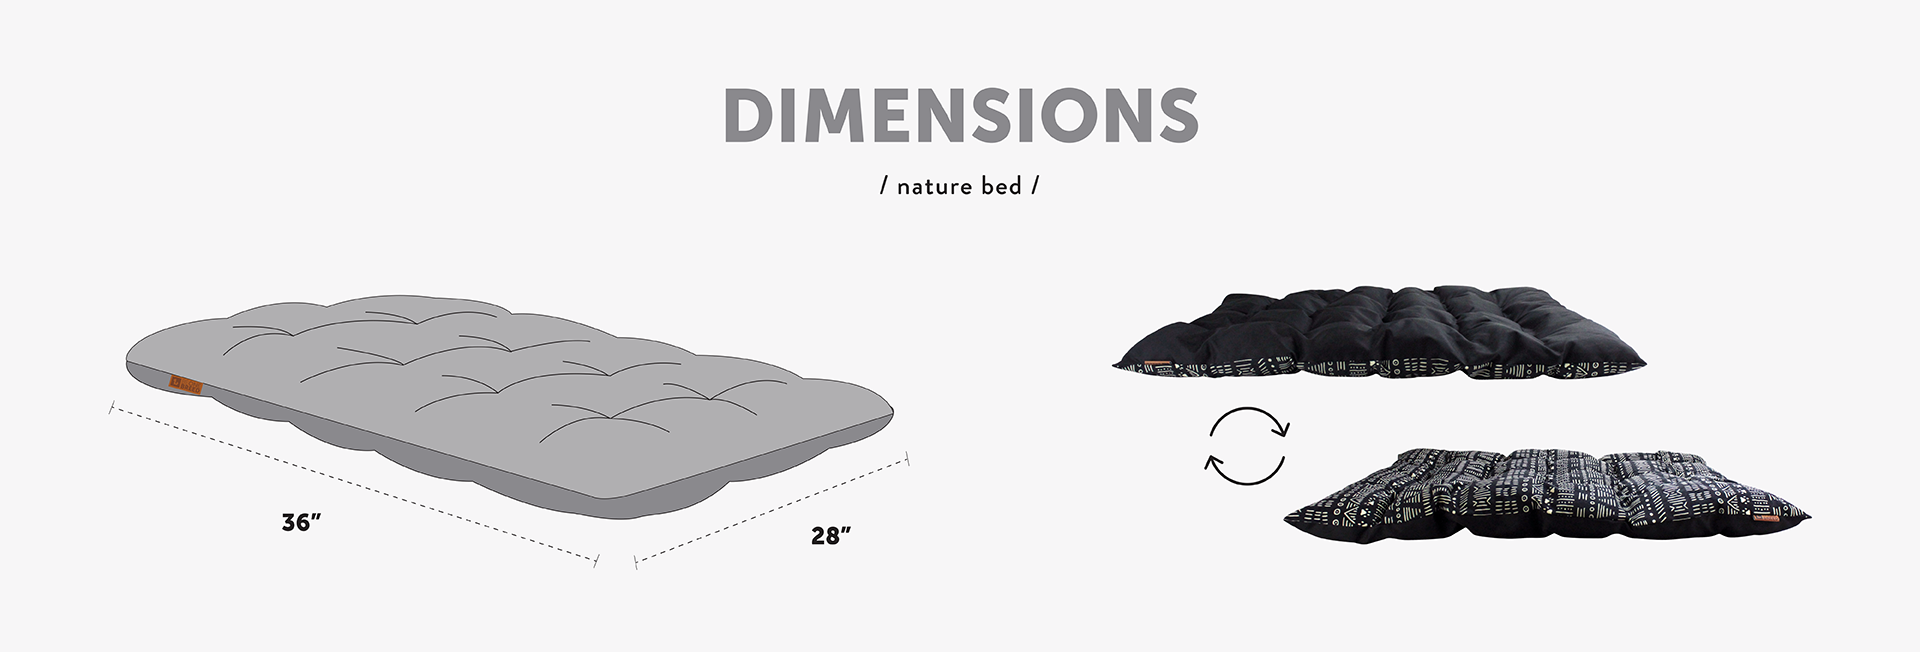 dimensions-nature-bed-for-dogs-english